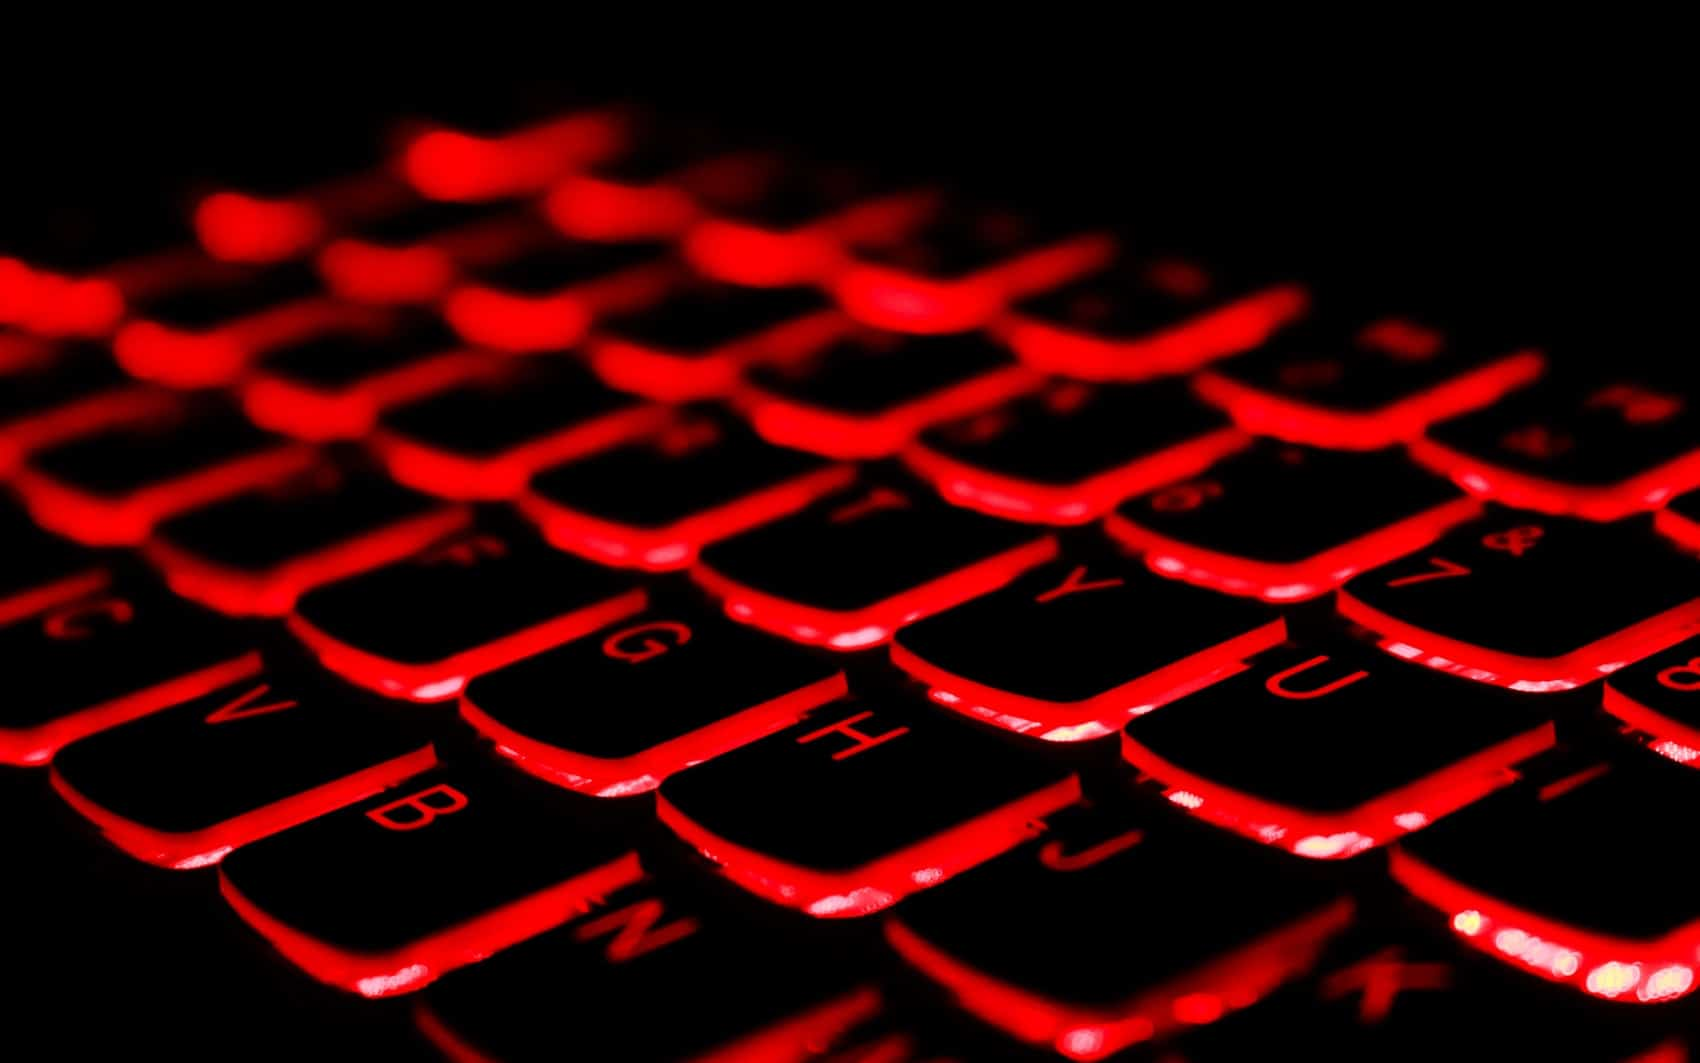 Computer keyboard in the dark, glowing red